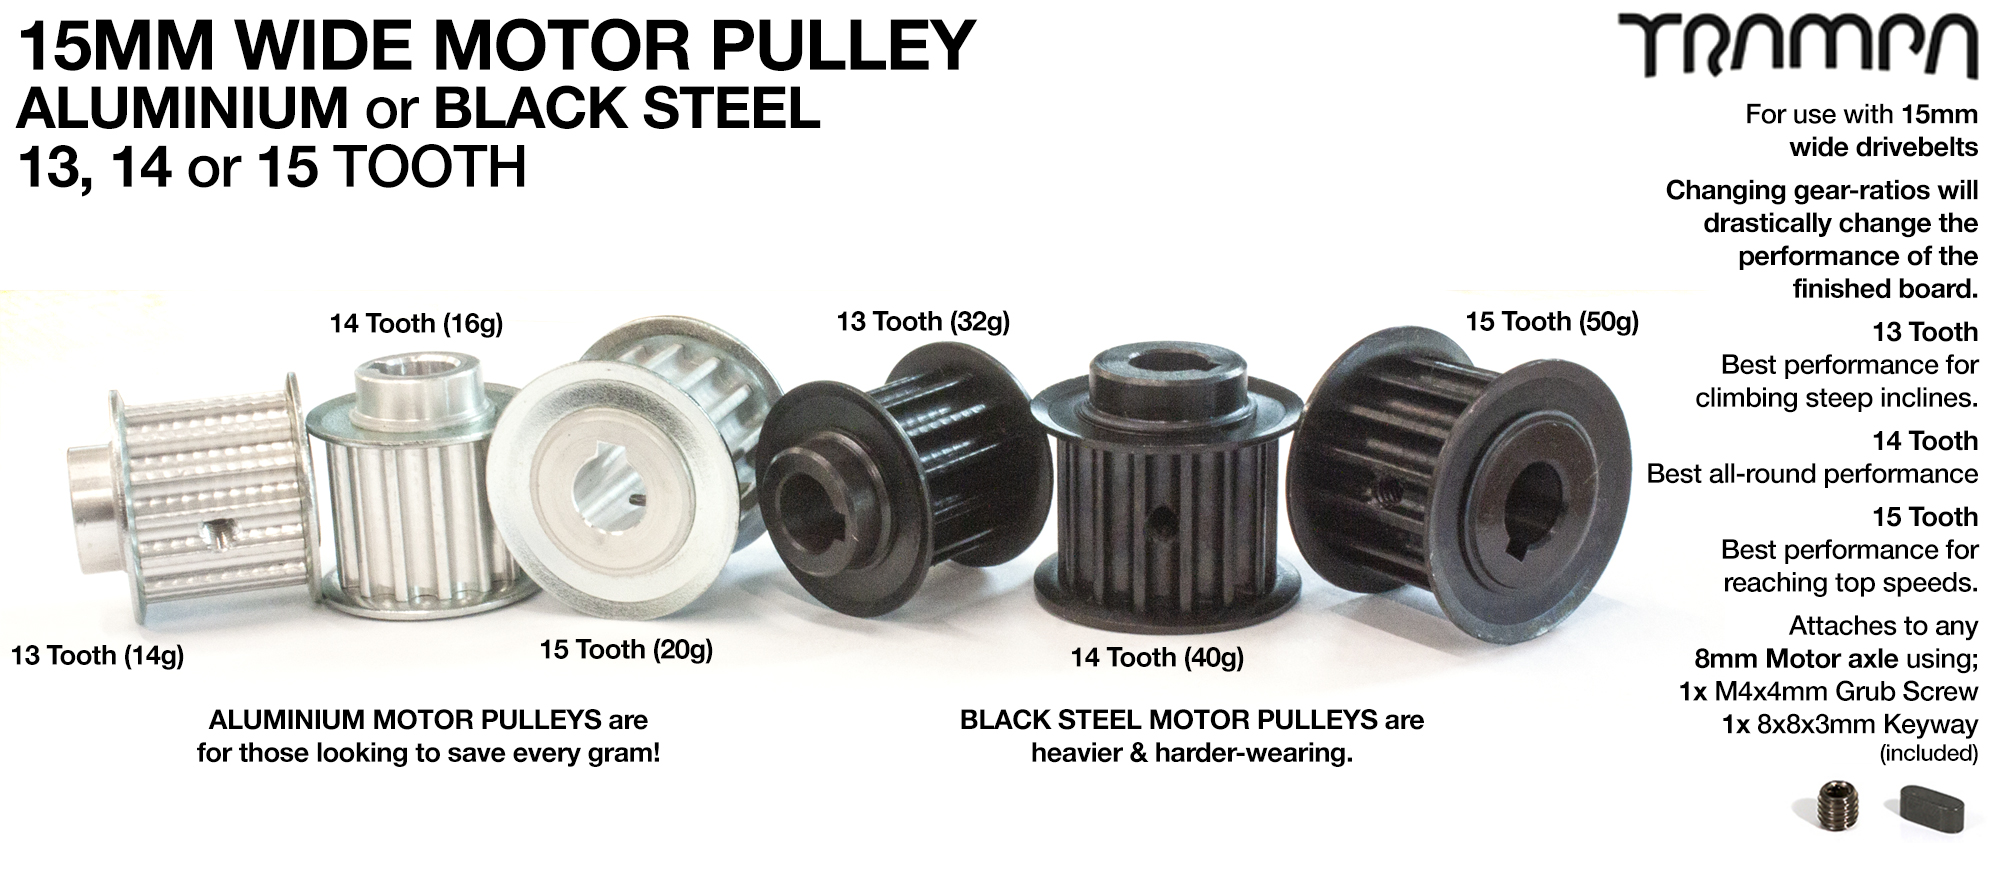 Custom choice Motor Pulley ALUMINIUM or BLACK STEEL & supplied with MGSS Grub Screw & Keyway - 13, 14, 15 tooth.